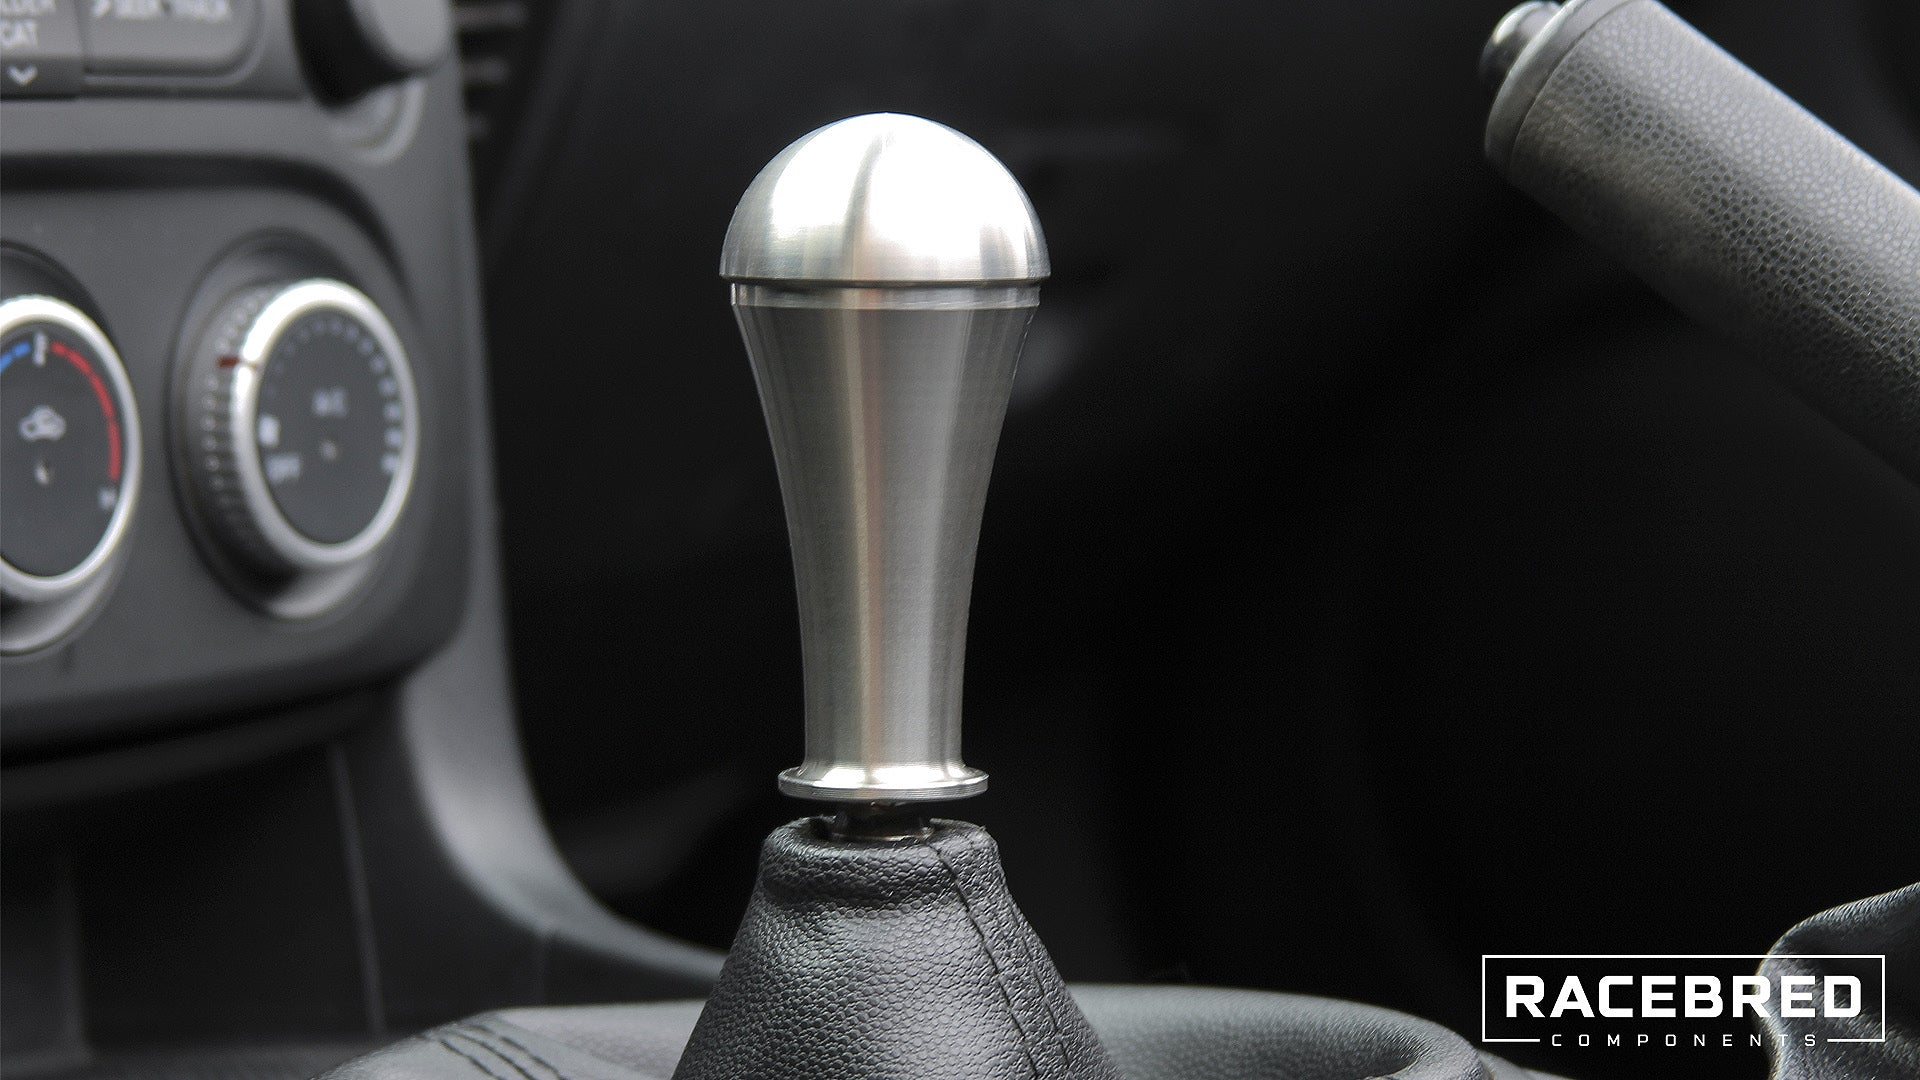 Racebred Components Stainless Steel Teardrop Shift Knob